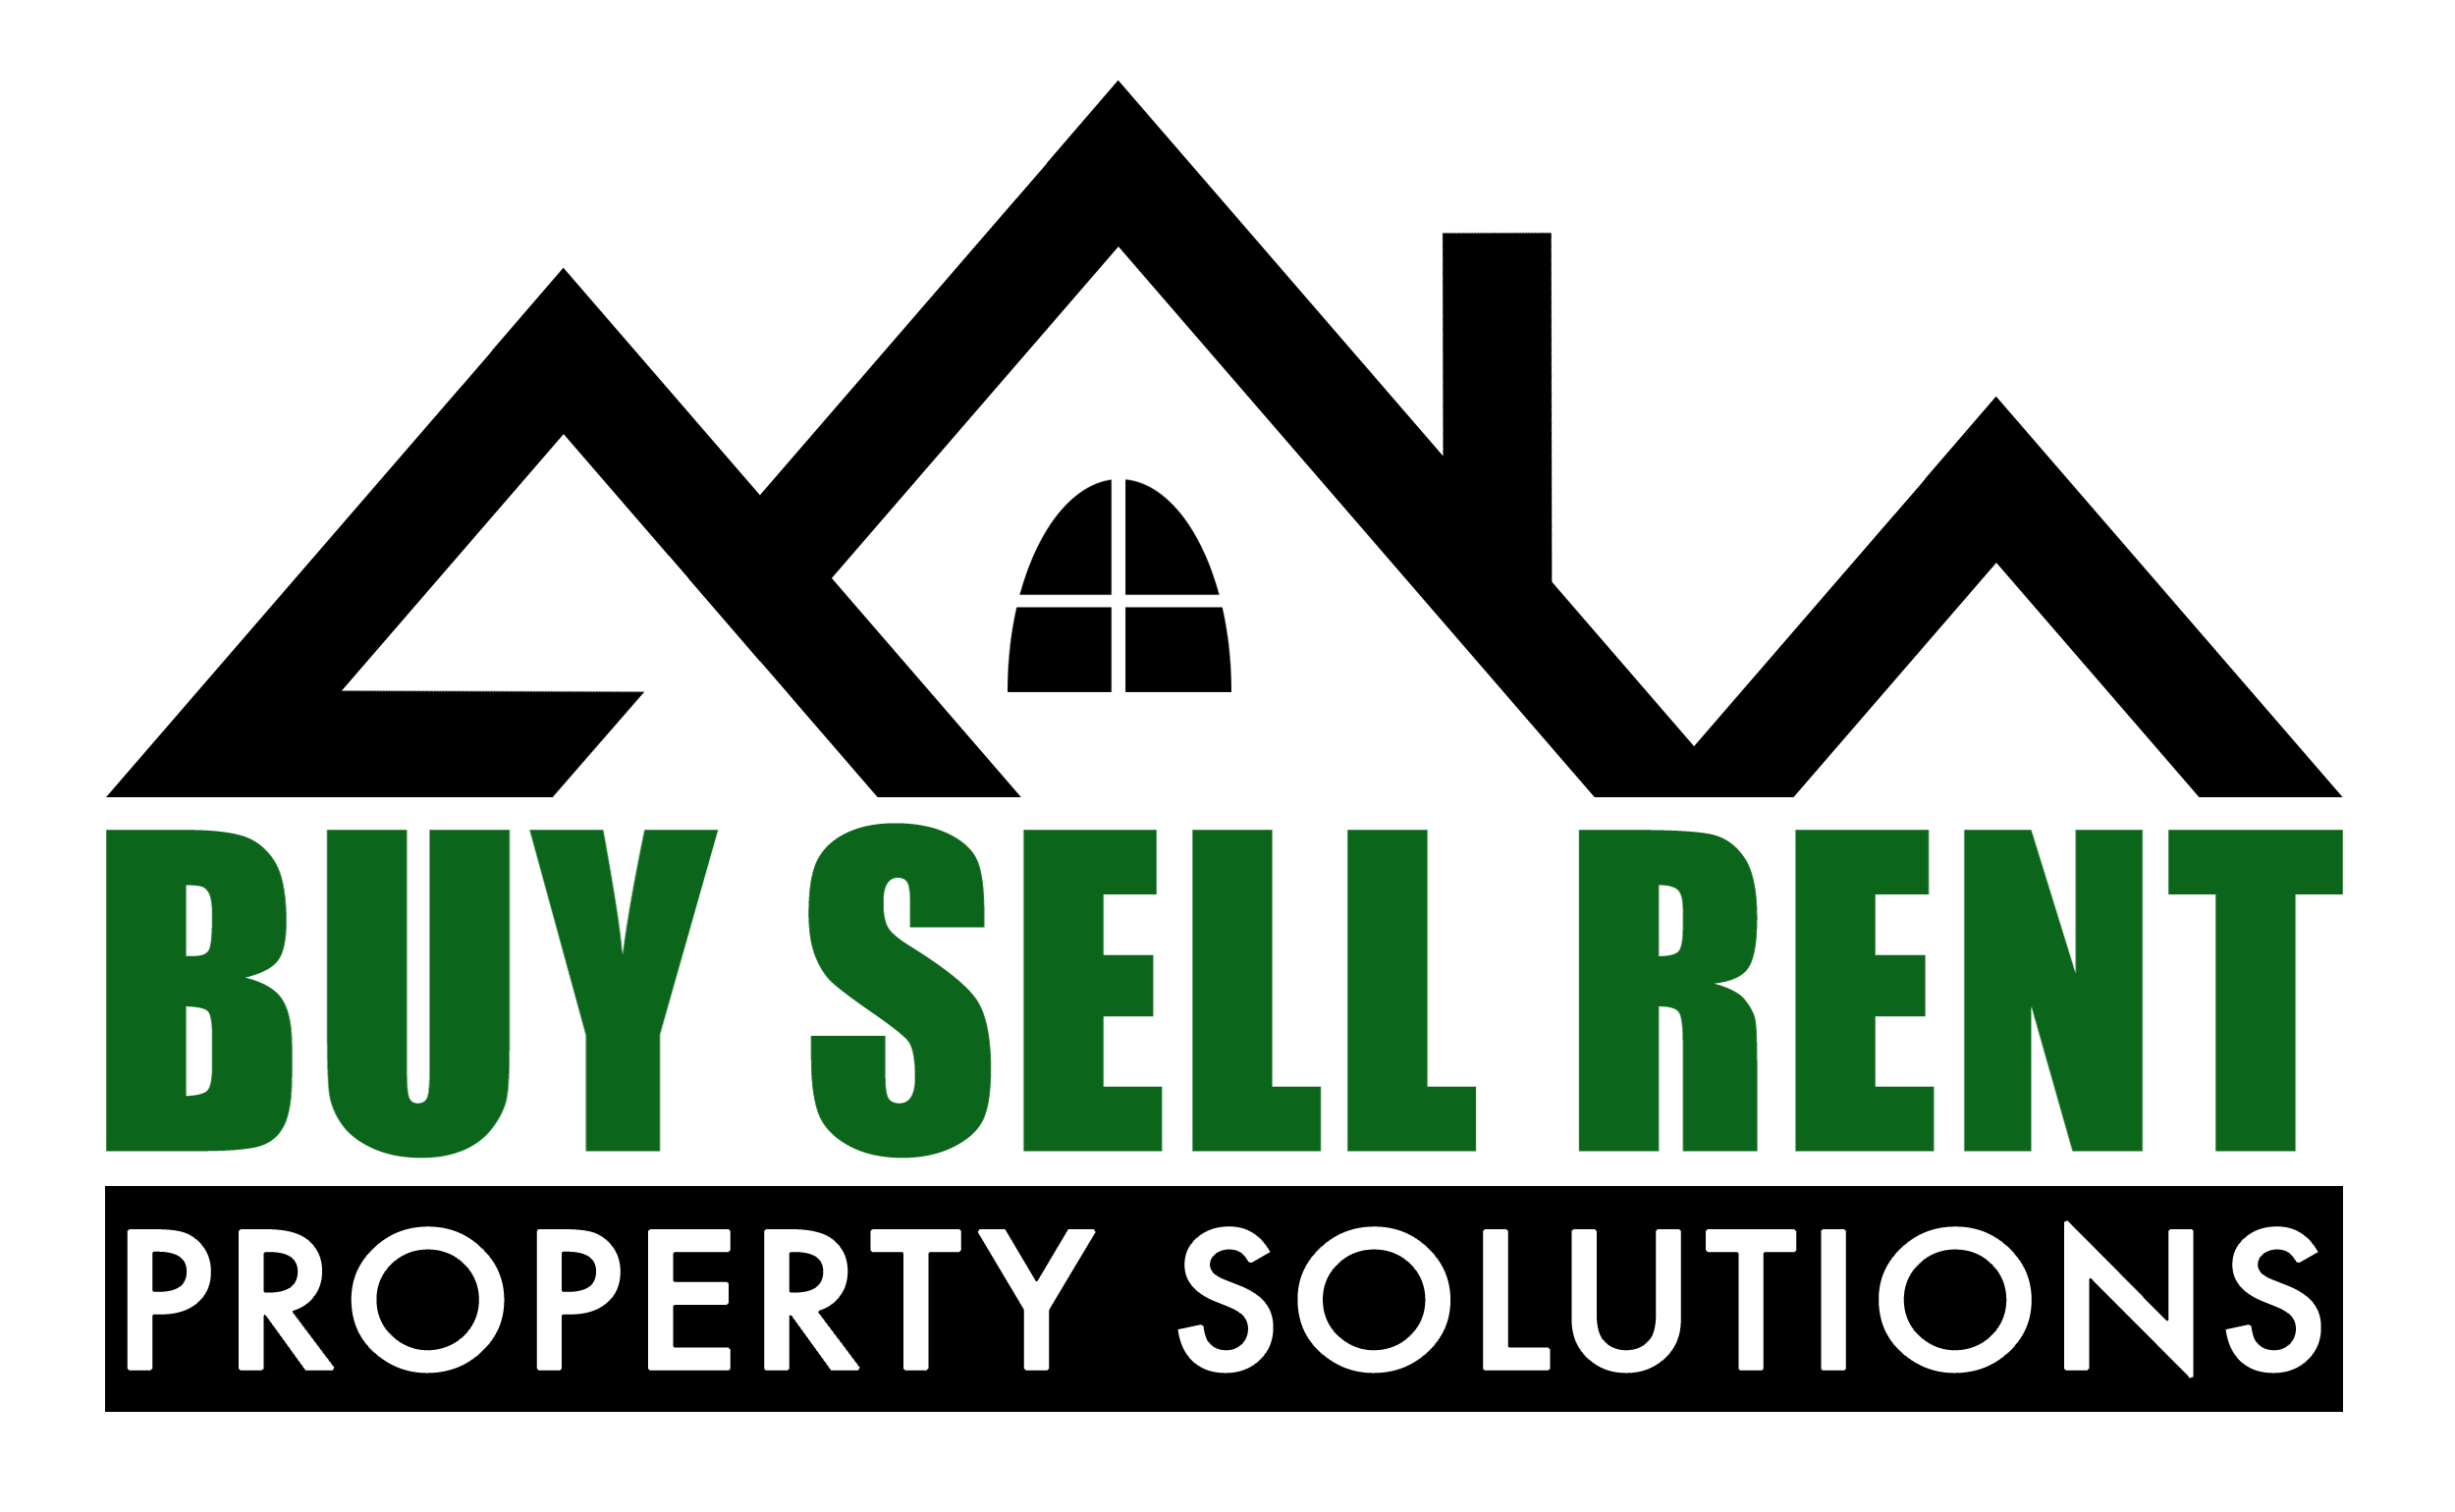 Buy Sell Rent Property Solutions